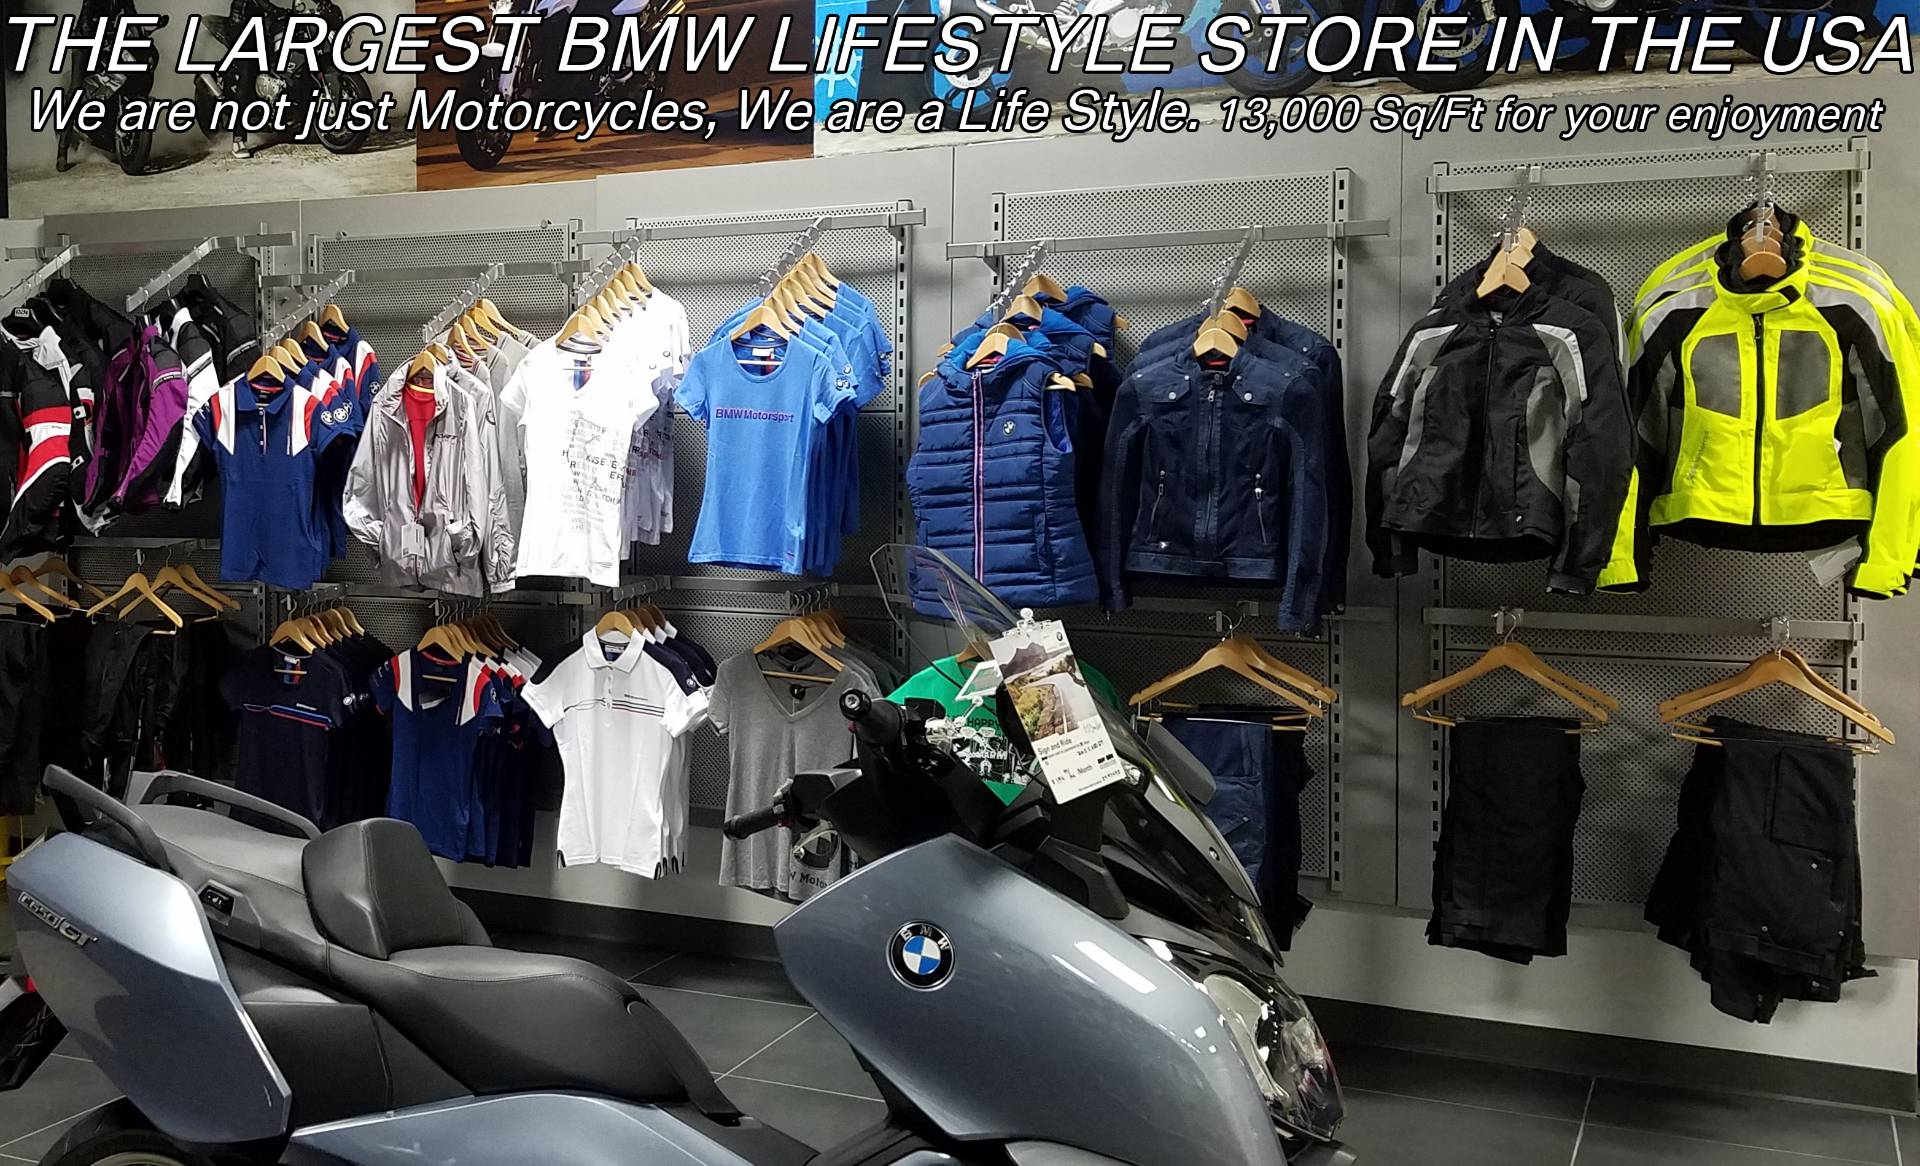 New 2019 BMW R 1250 GS for sale, New BMW R 1250GS, BMW R1250GS for sale, 1250GS, R1250GS, BMW Motorcycles of Miami, Motorcycles of Miami. Motorcycles Miami - Photo 39